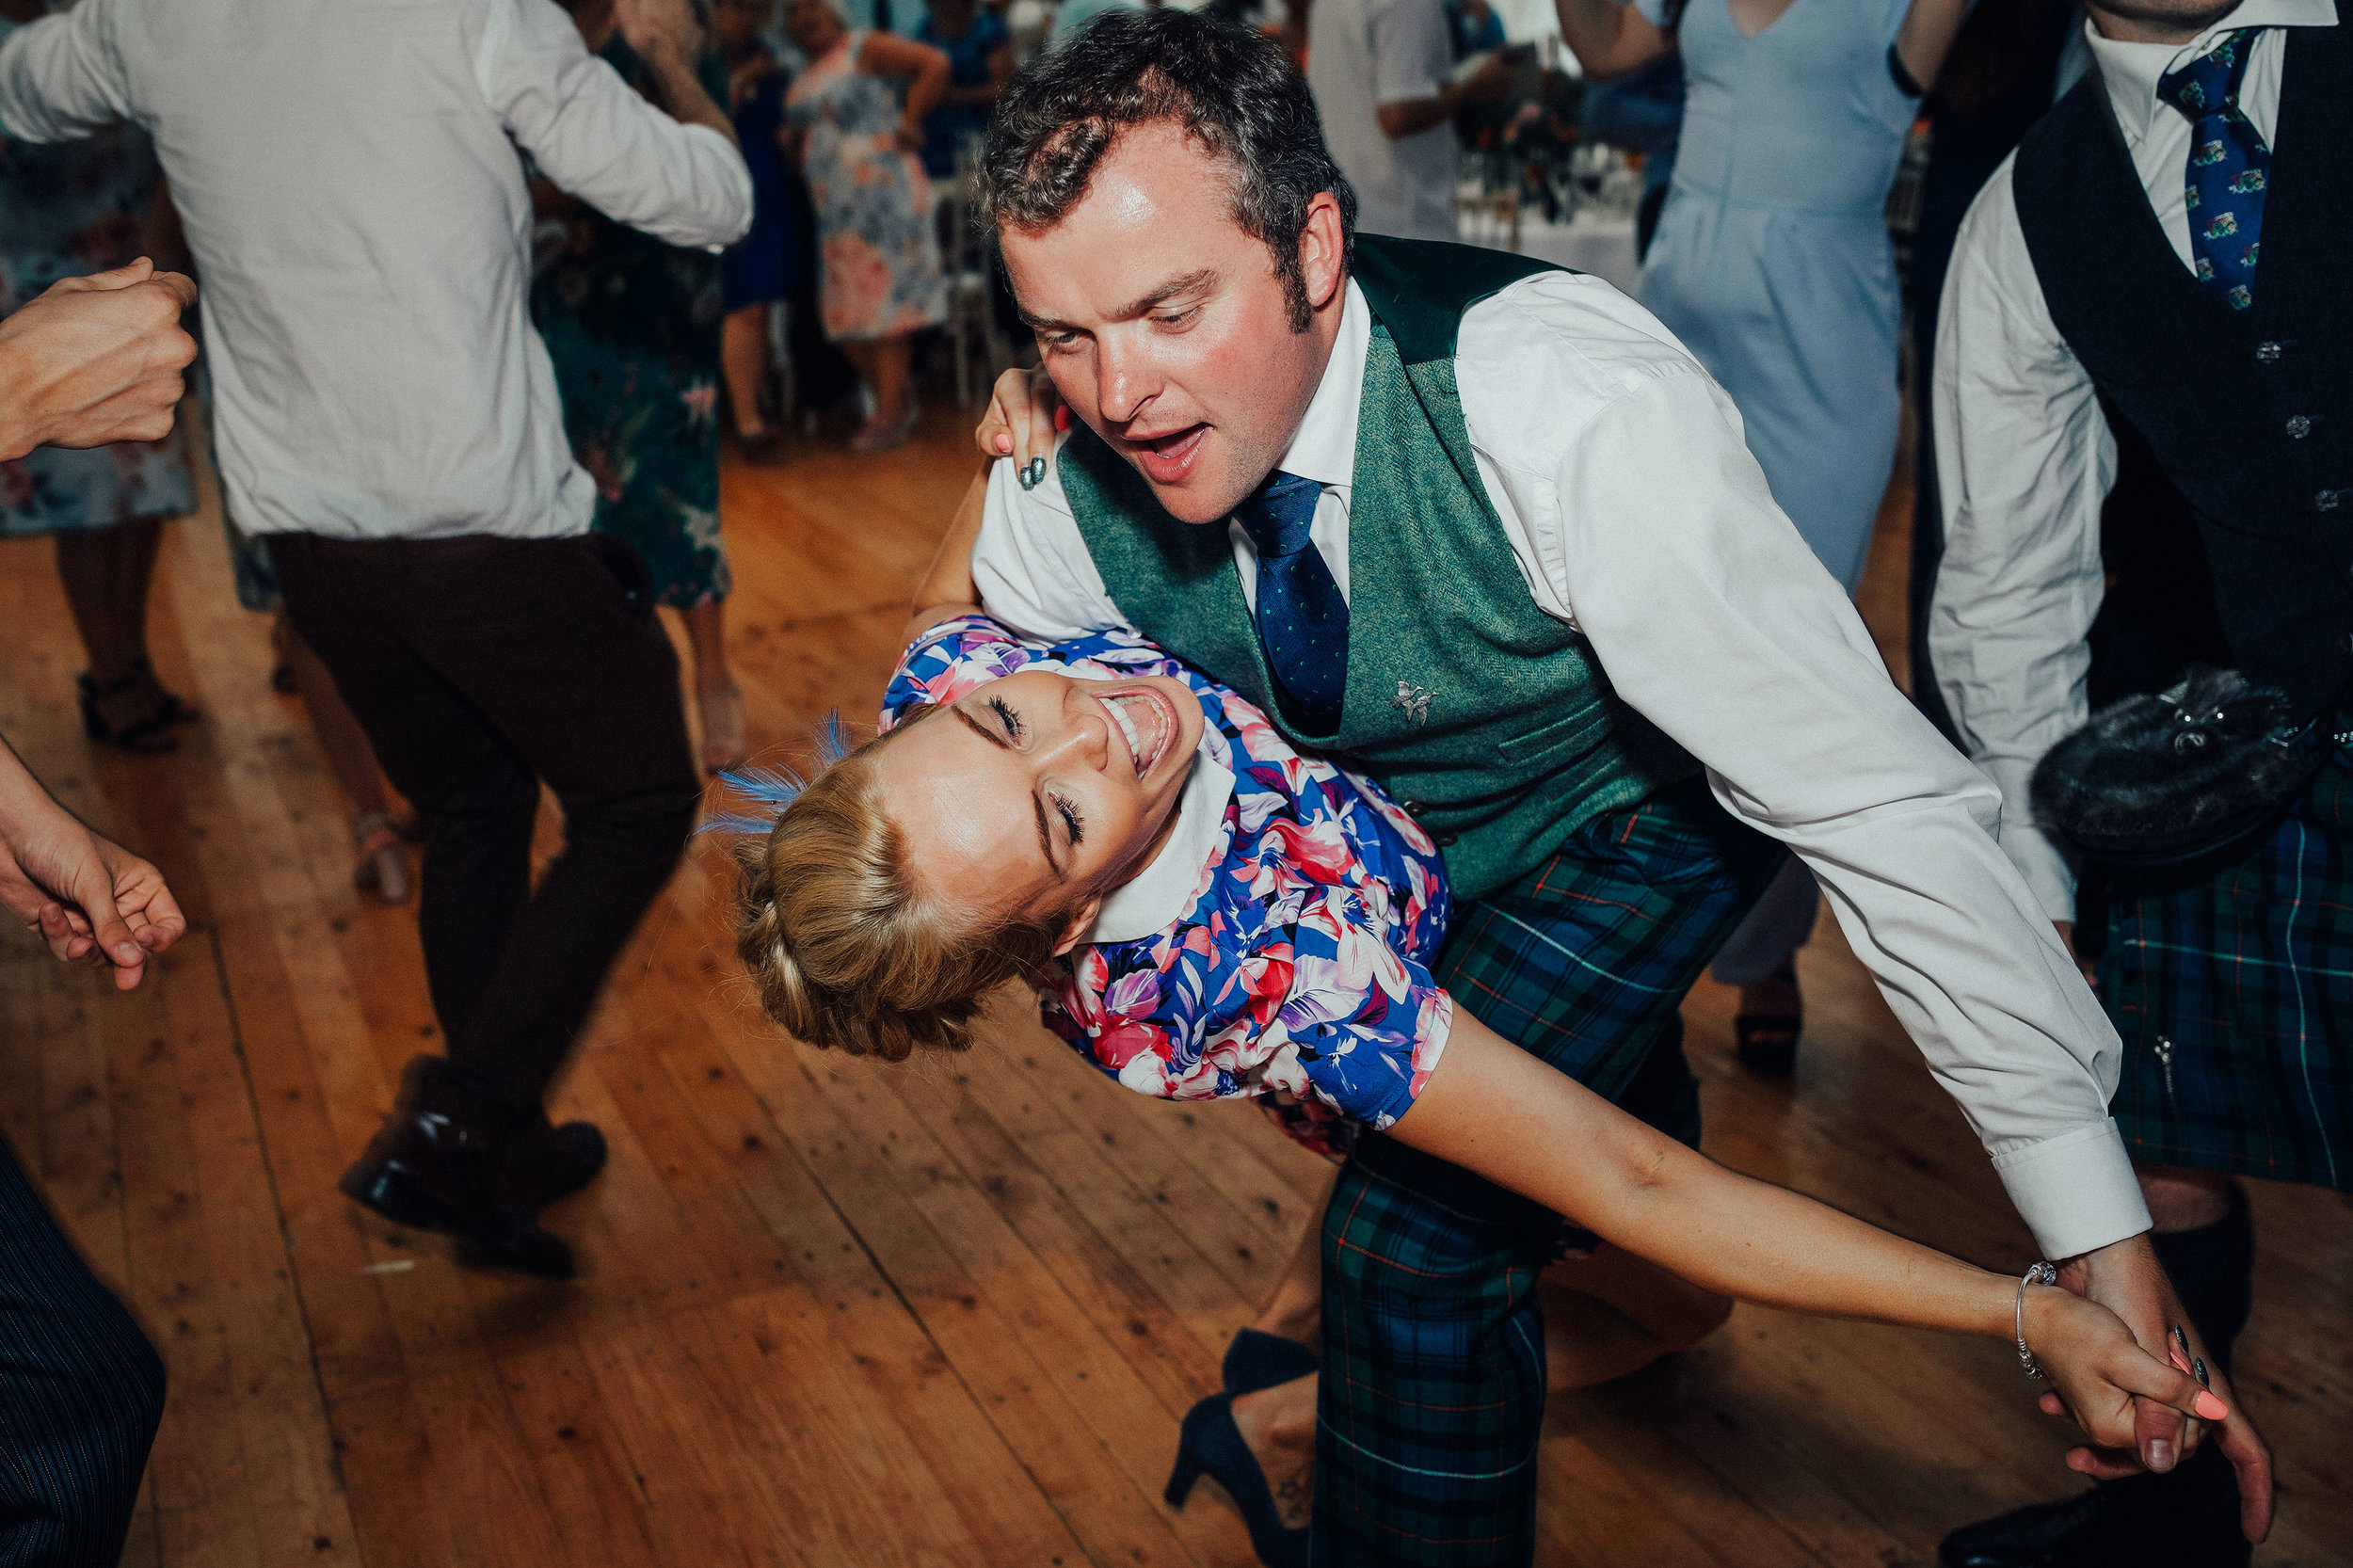 PJ_PHILLIPS_PHOTOGRAPHY_2018_SCOTLAND_WEDDING_PHOTOOGRAPHER_160.jpg